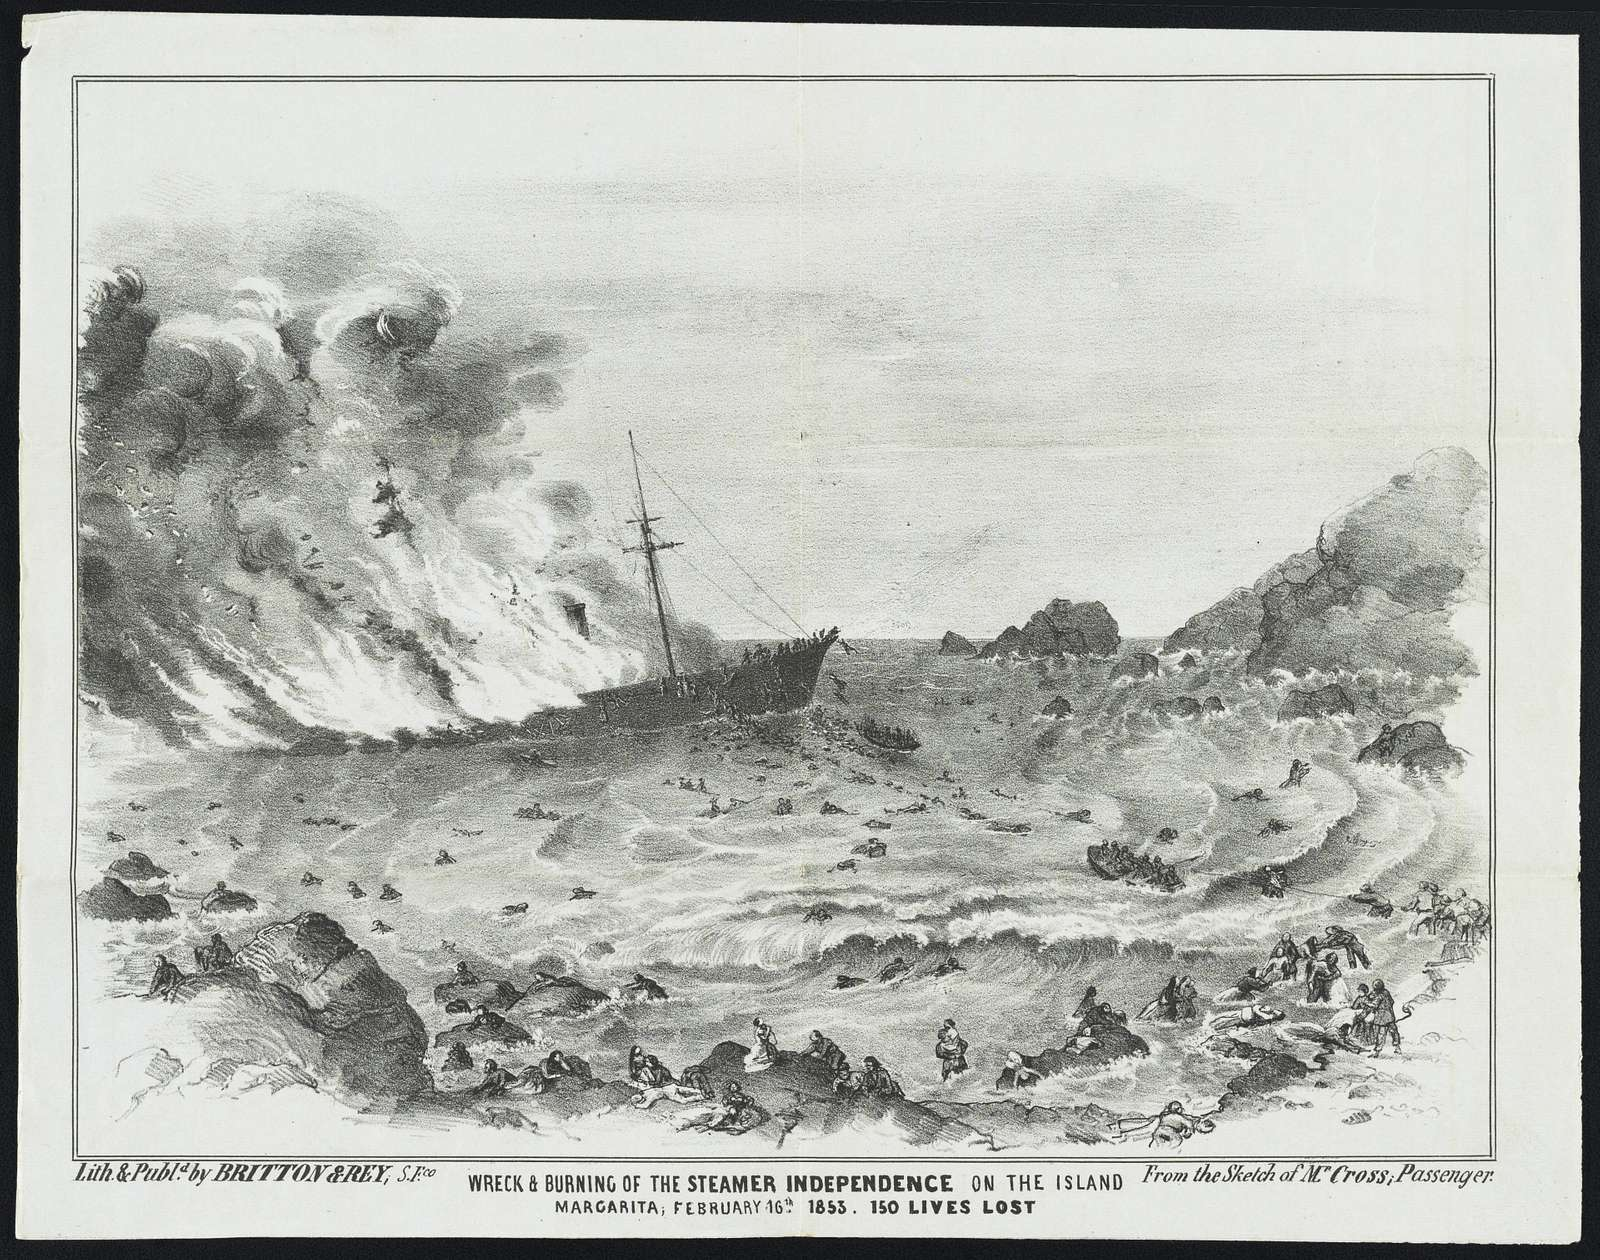 Wreck & burning of the steamer Independence on the island of Margarita, February 16th, 1853 ; 150 lives lost / / From the sketch of Mr. Cross, passenger ; Lith. & publd. by Britton & Rey, S. Fco.